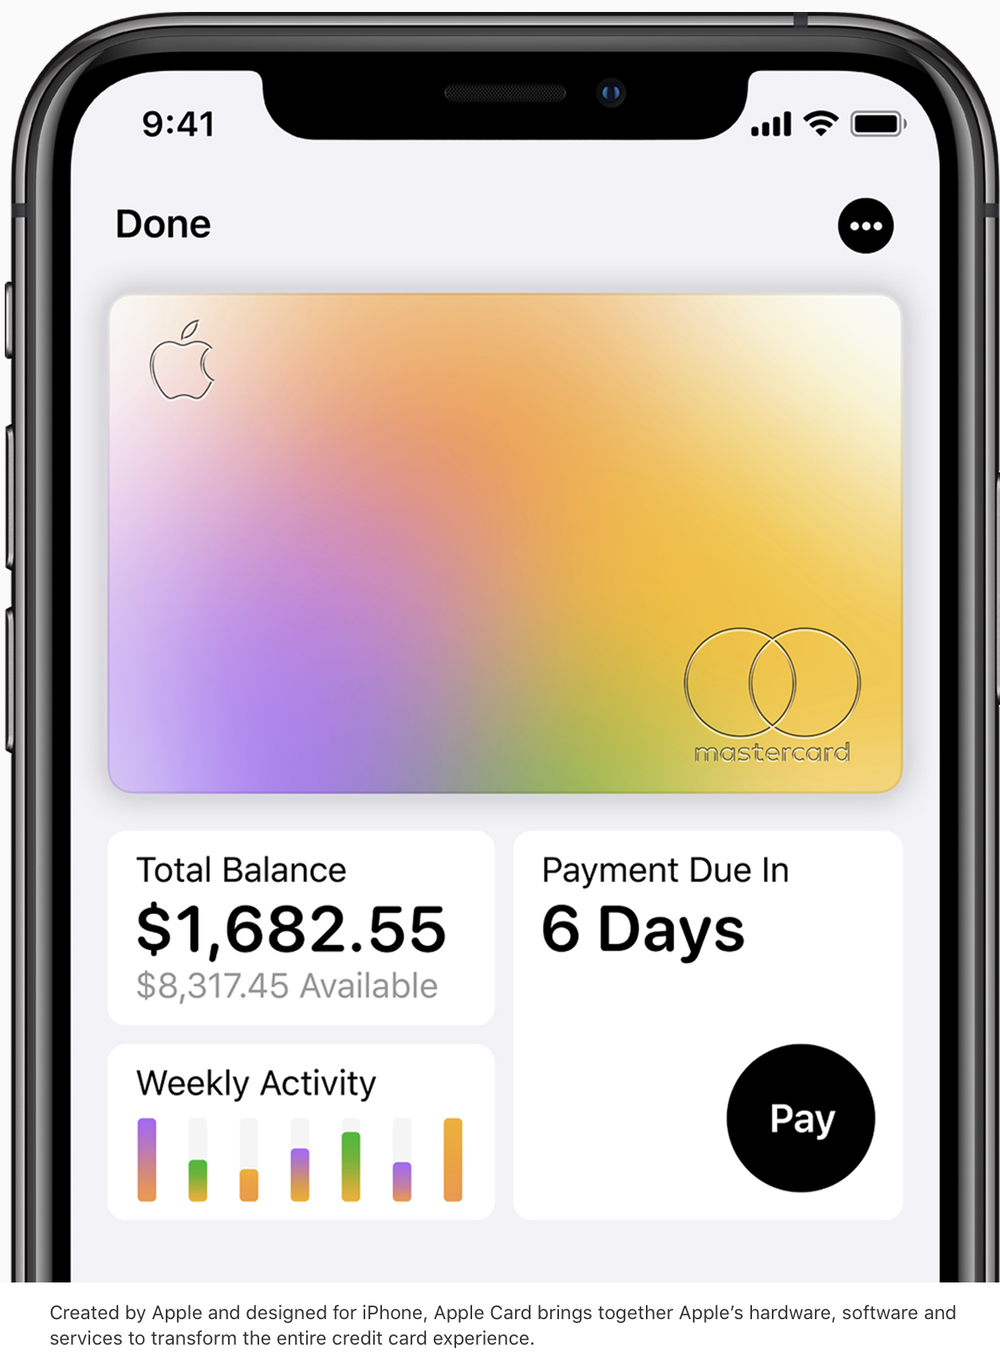 You may soon be able to finance an iPhone with no interest payments via the Apple Card